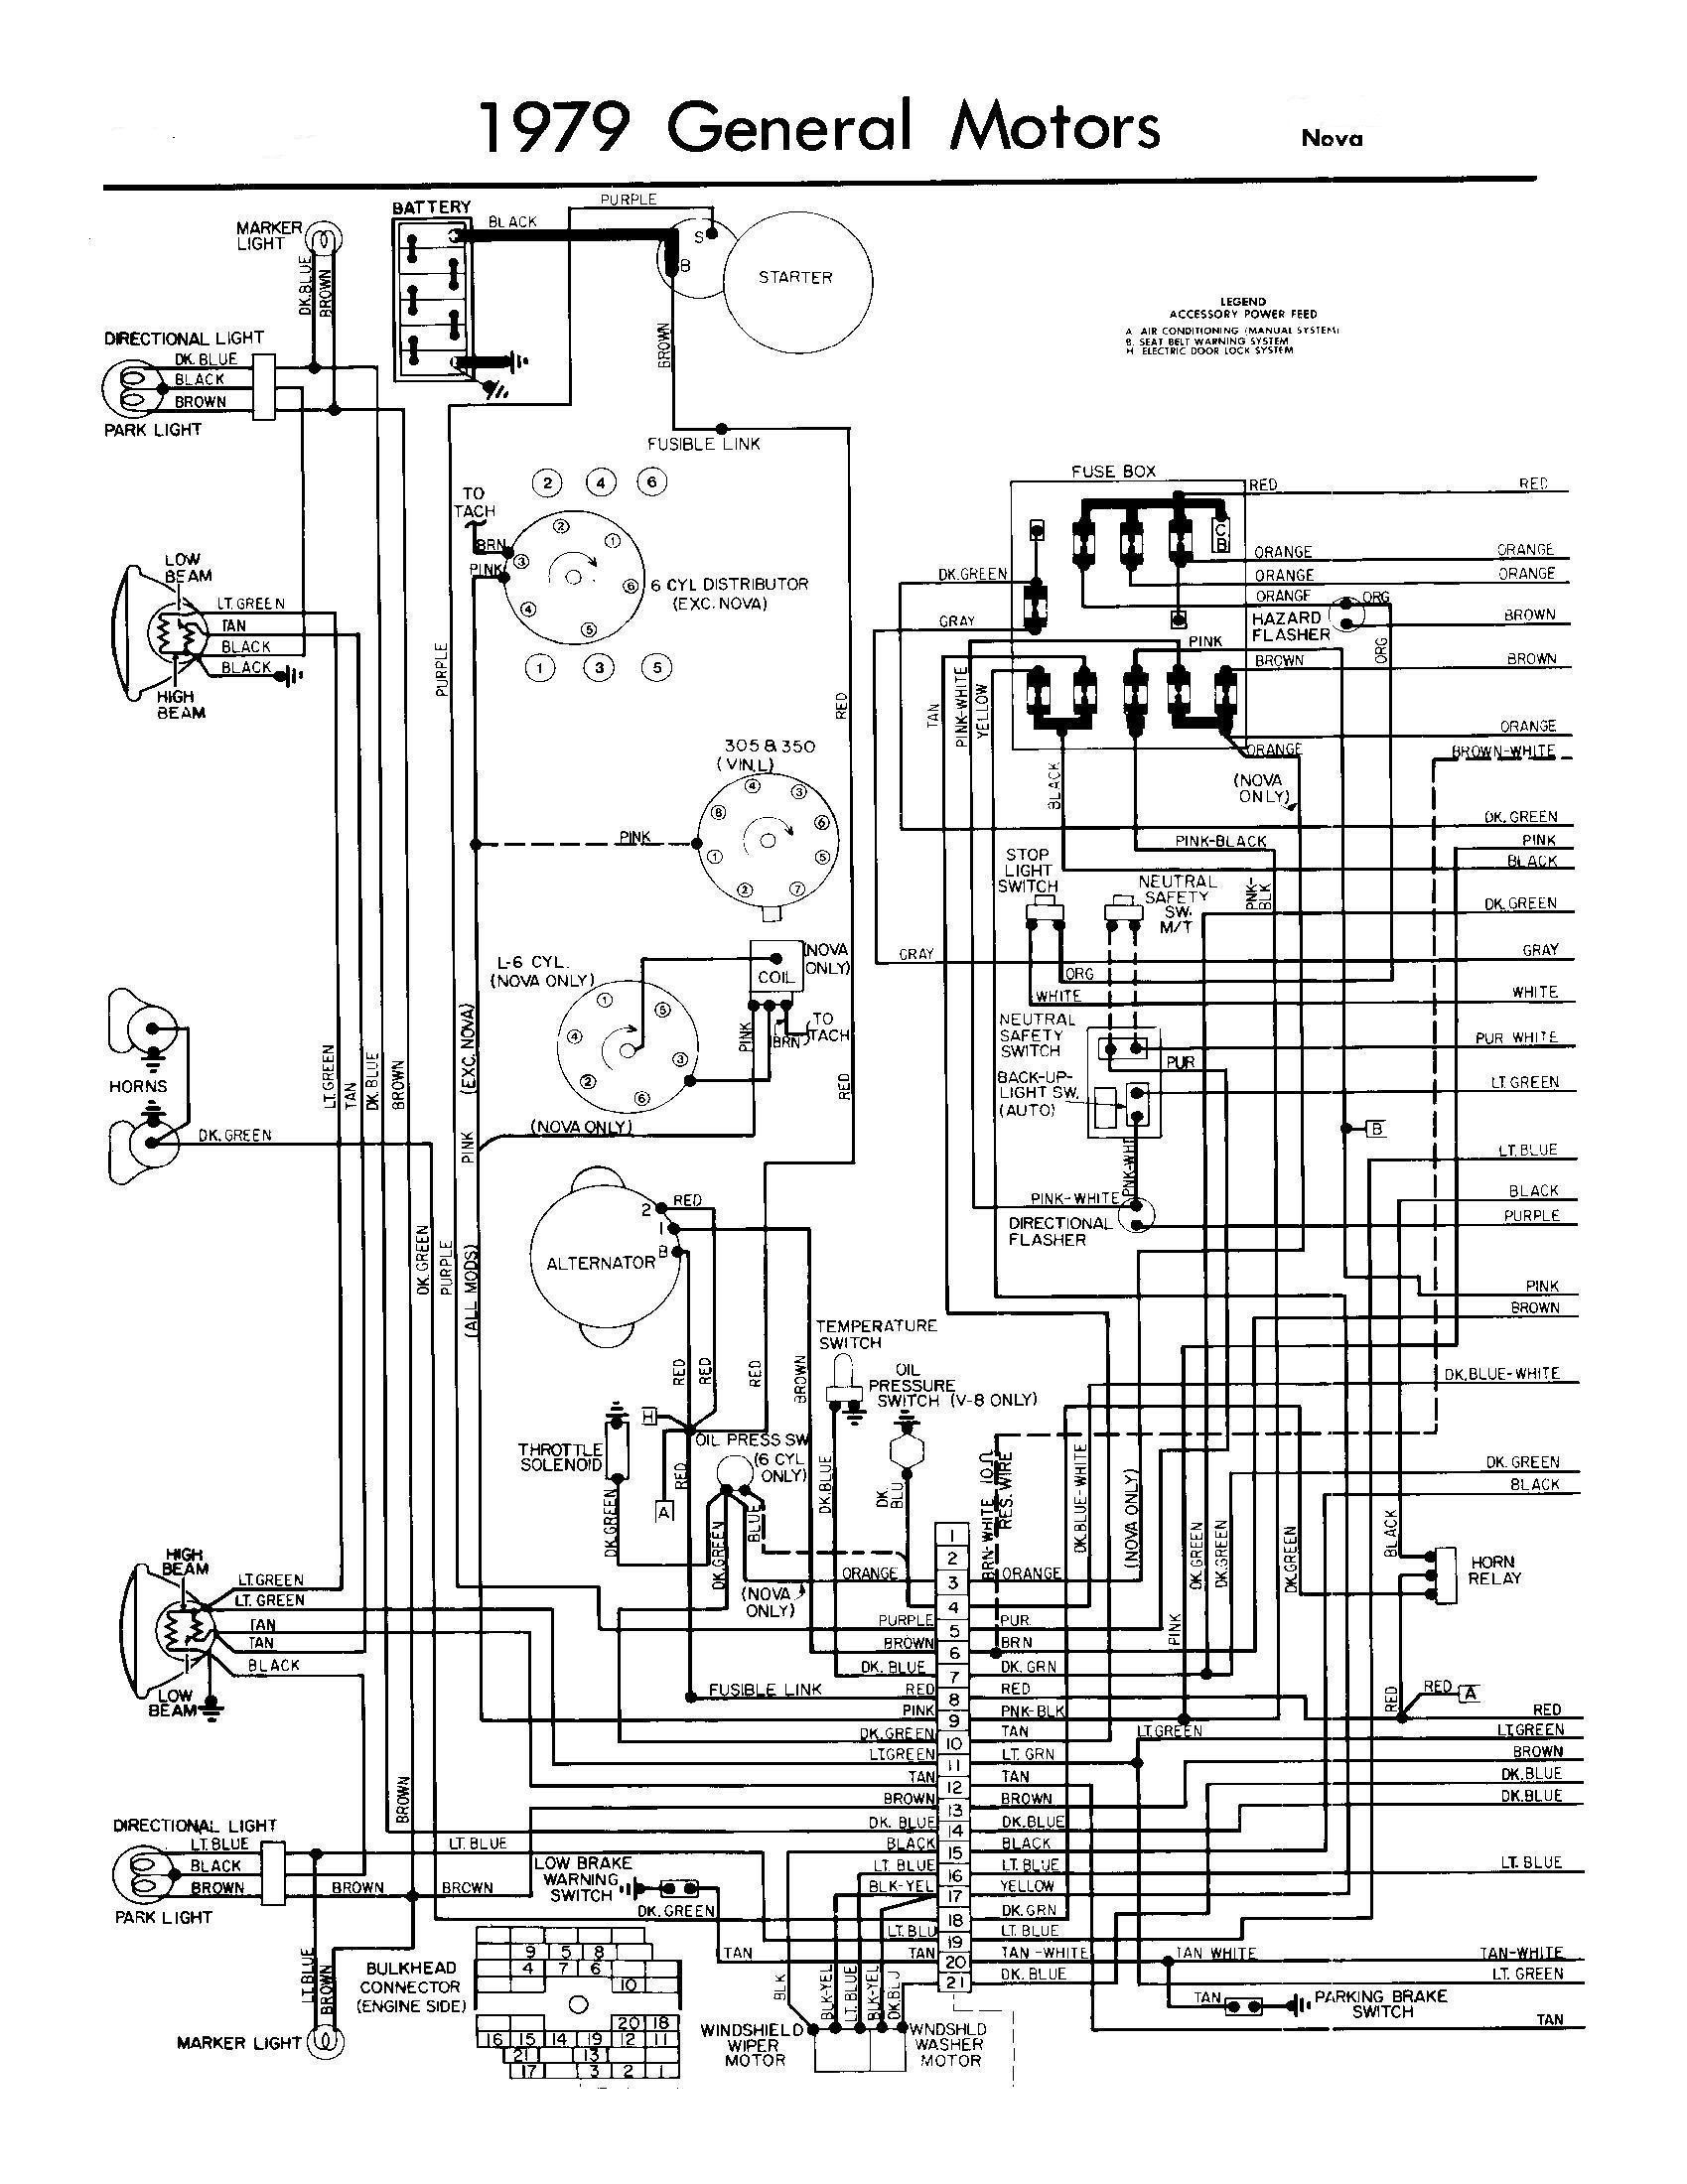 1987 Ford L8000 Alternator Wiring Diagram Books Of Engine Diagrams U2022 Rh Mattersoflifecoaching Co